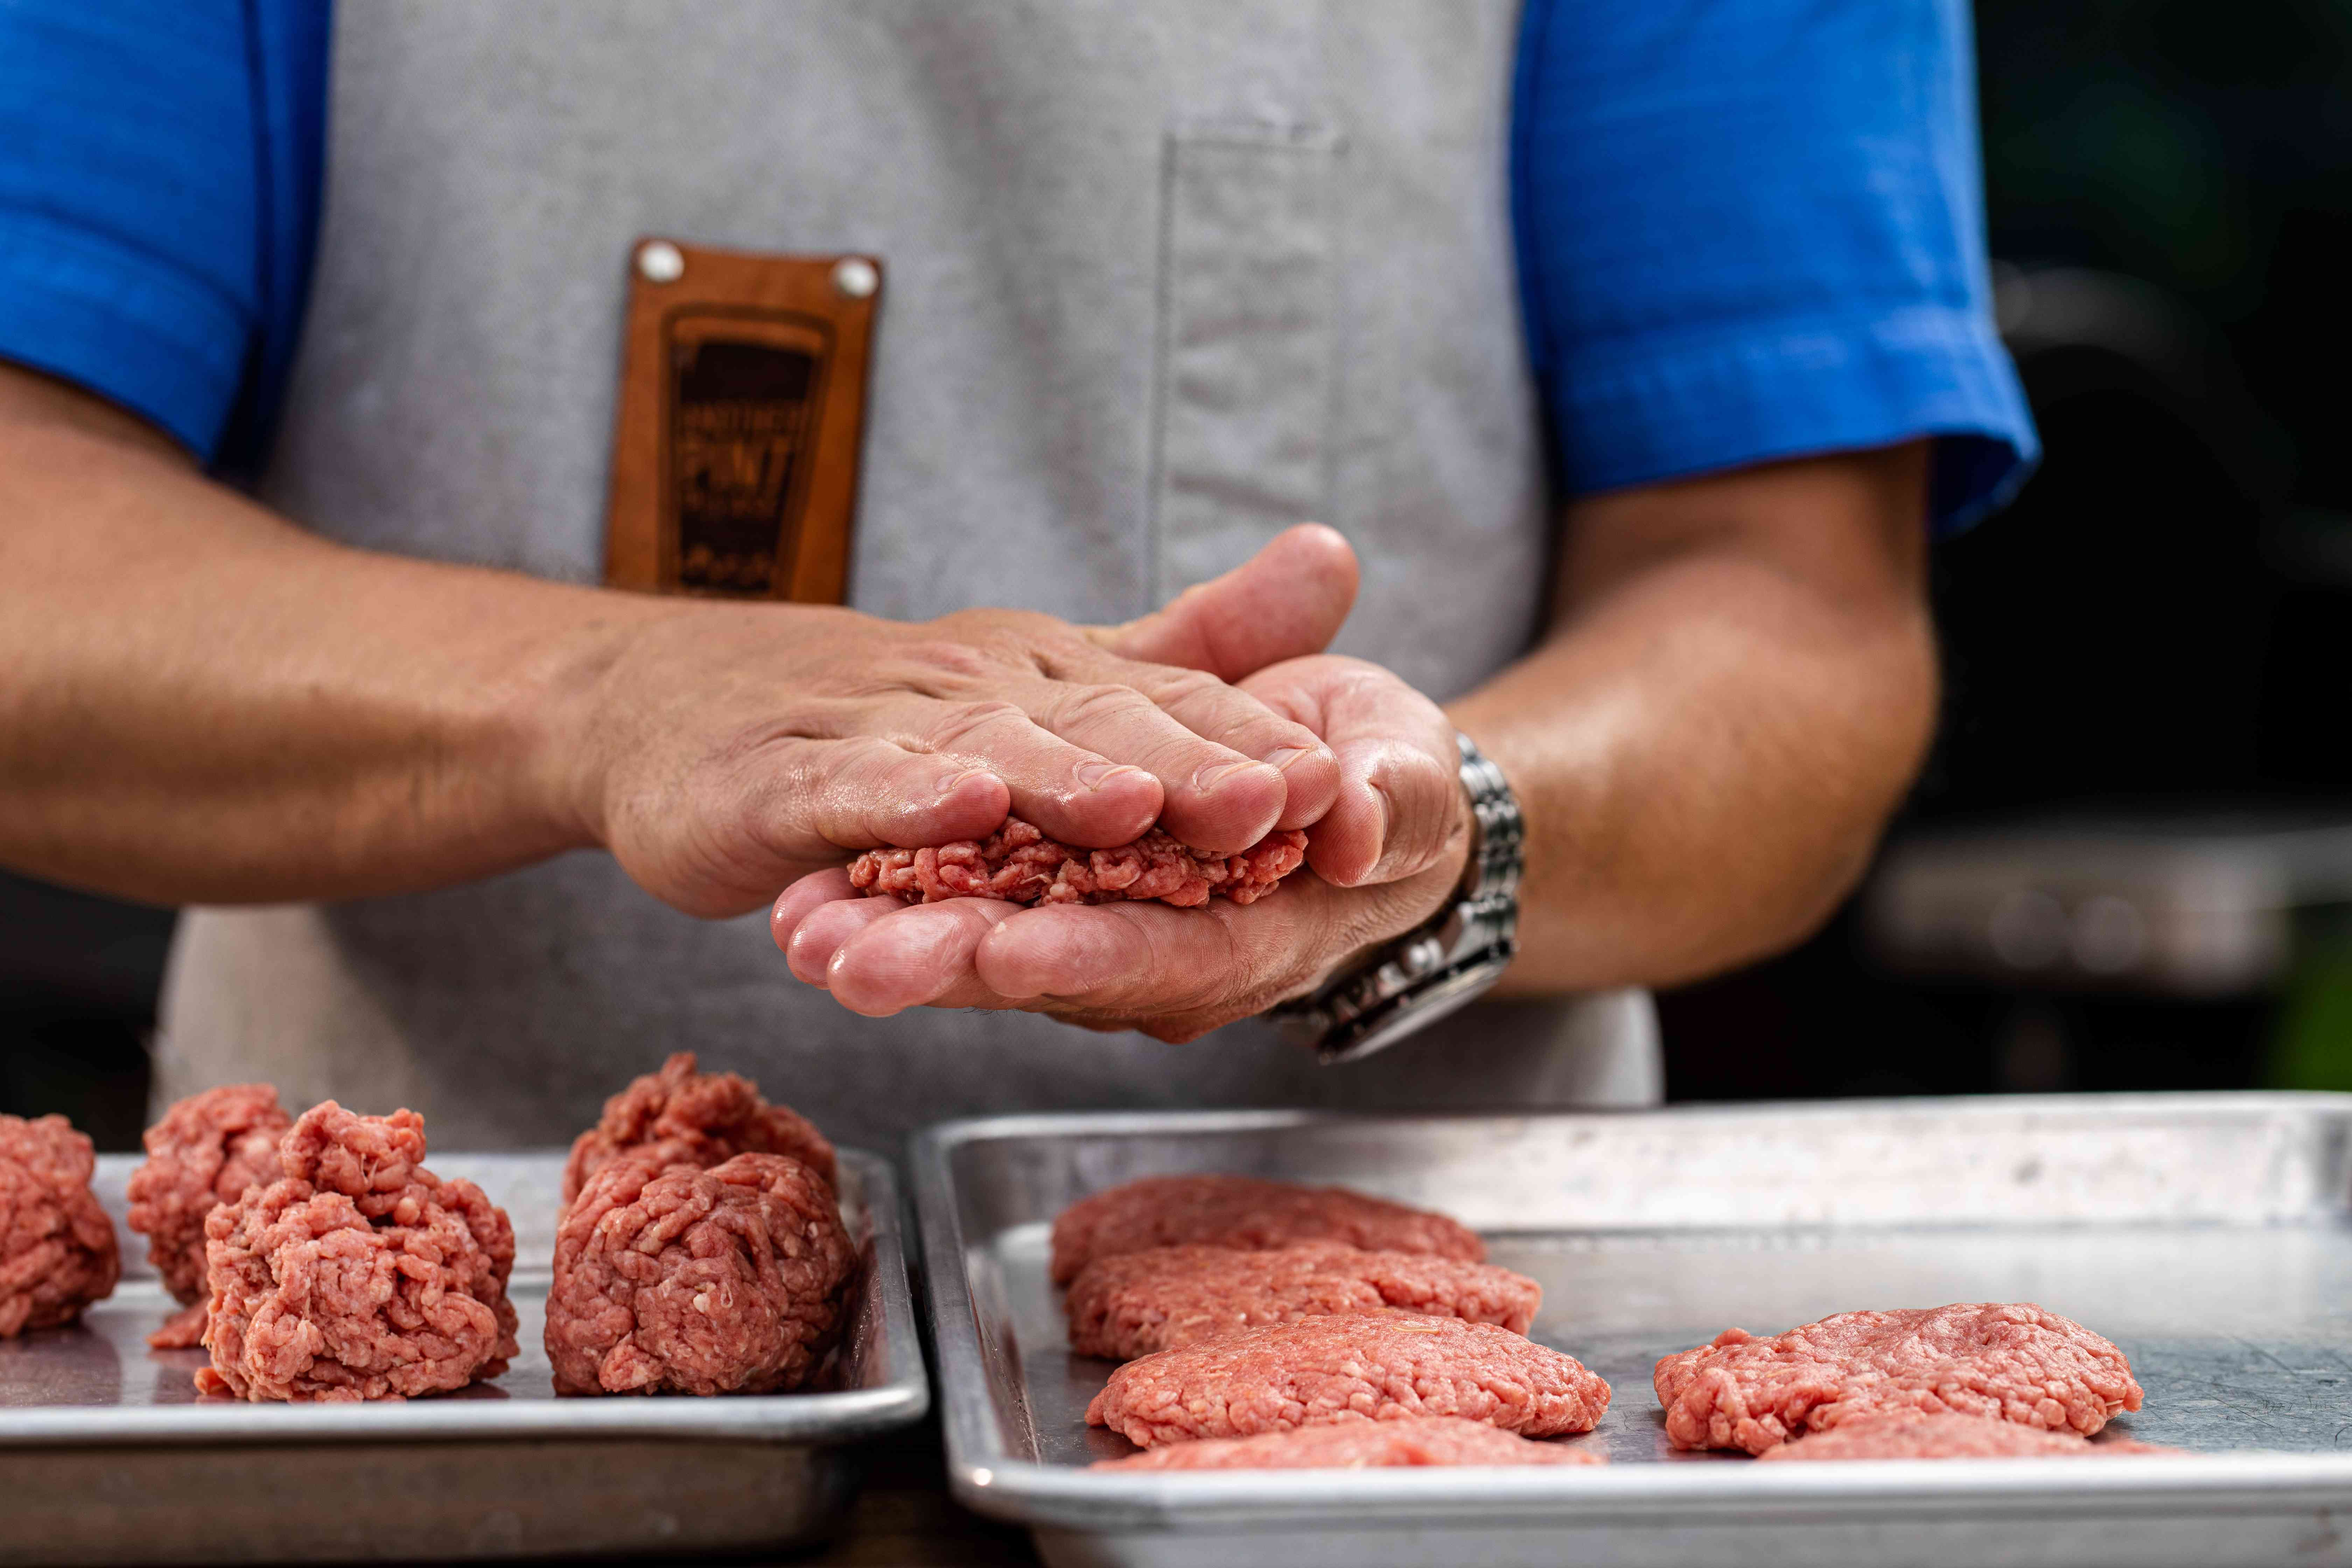 Pressing ground beef into patties for a copy cat Juicy Lucy burger